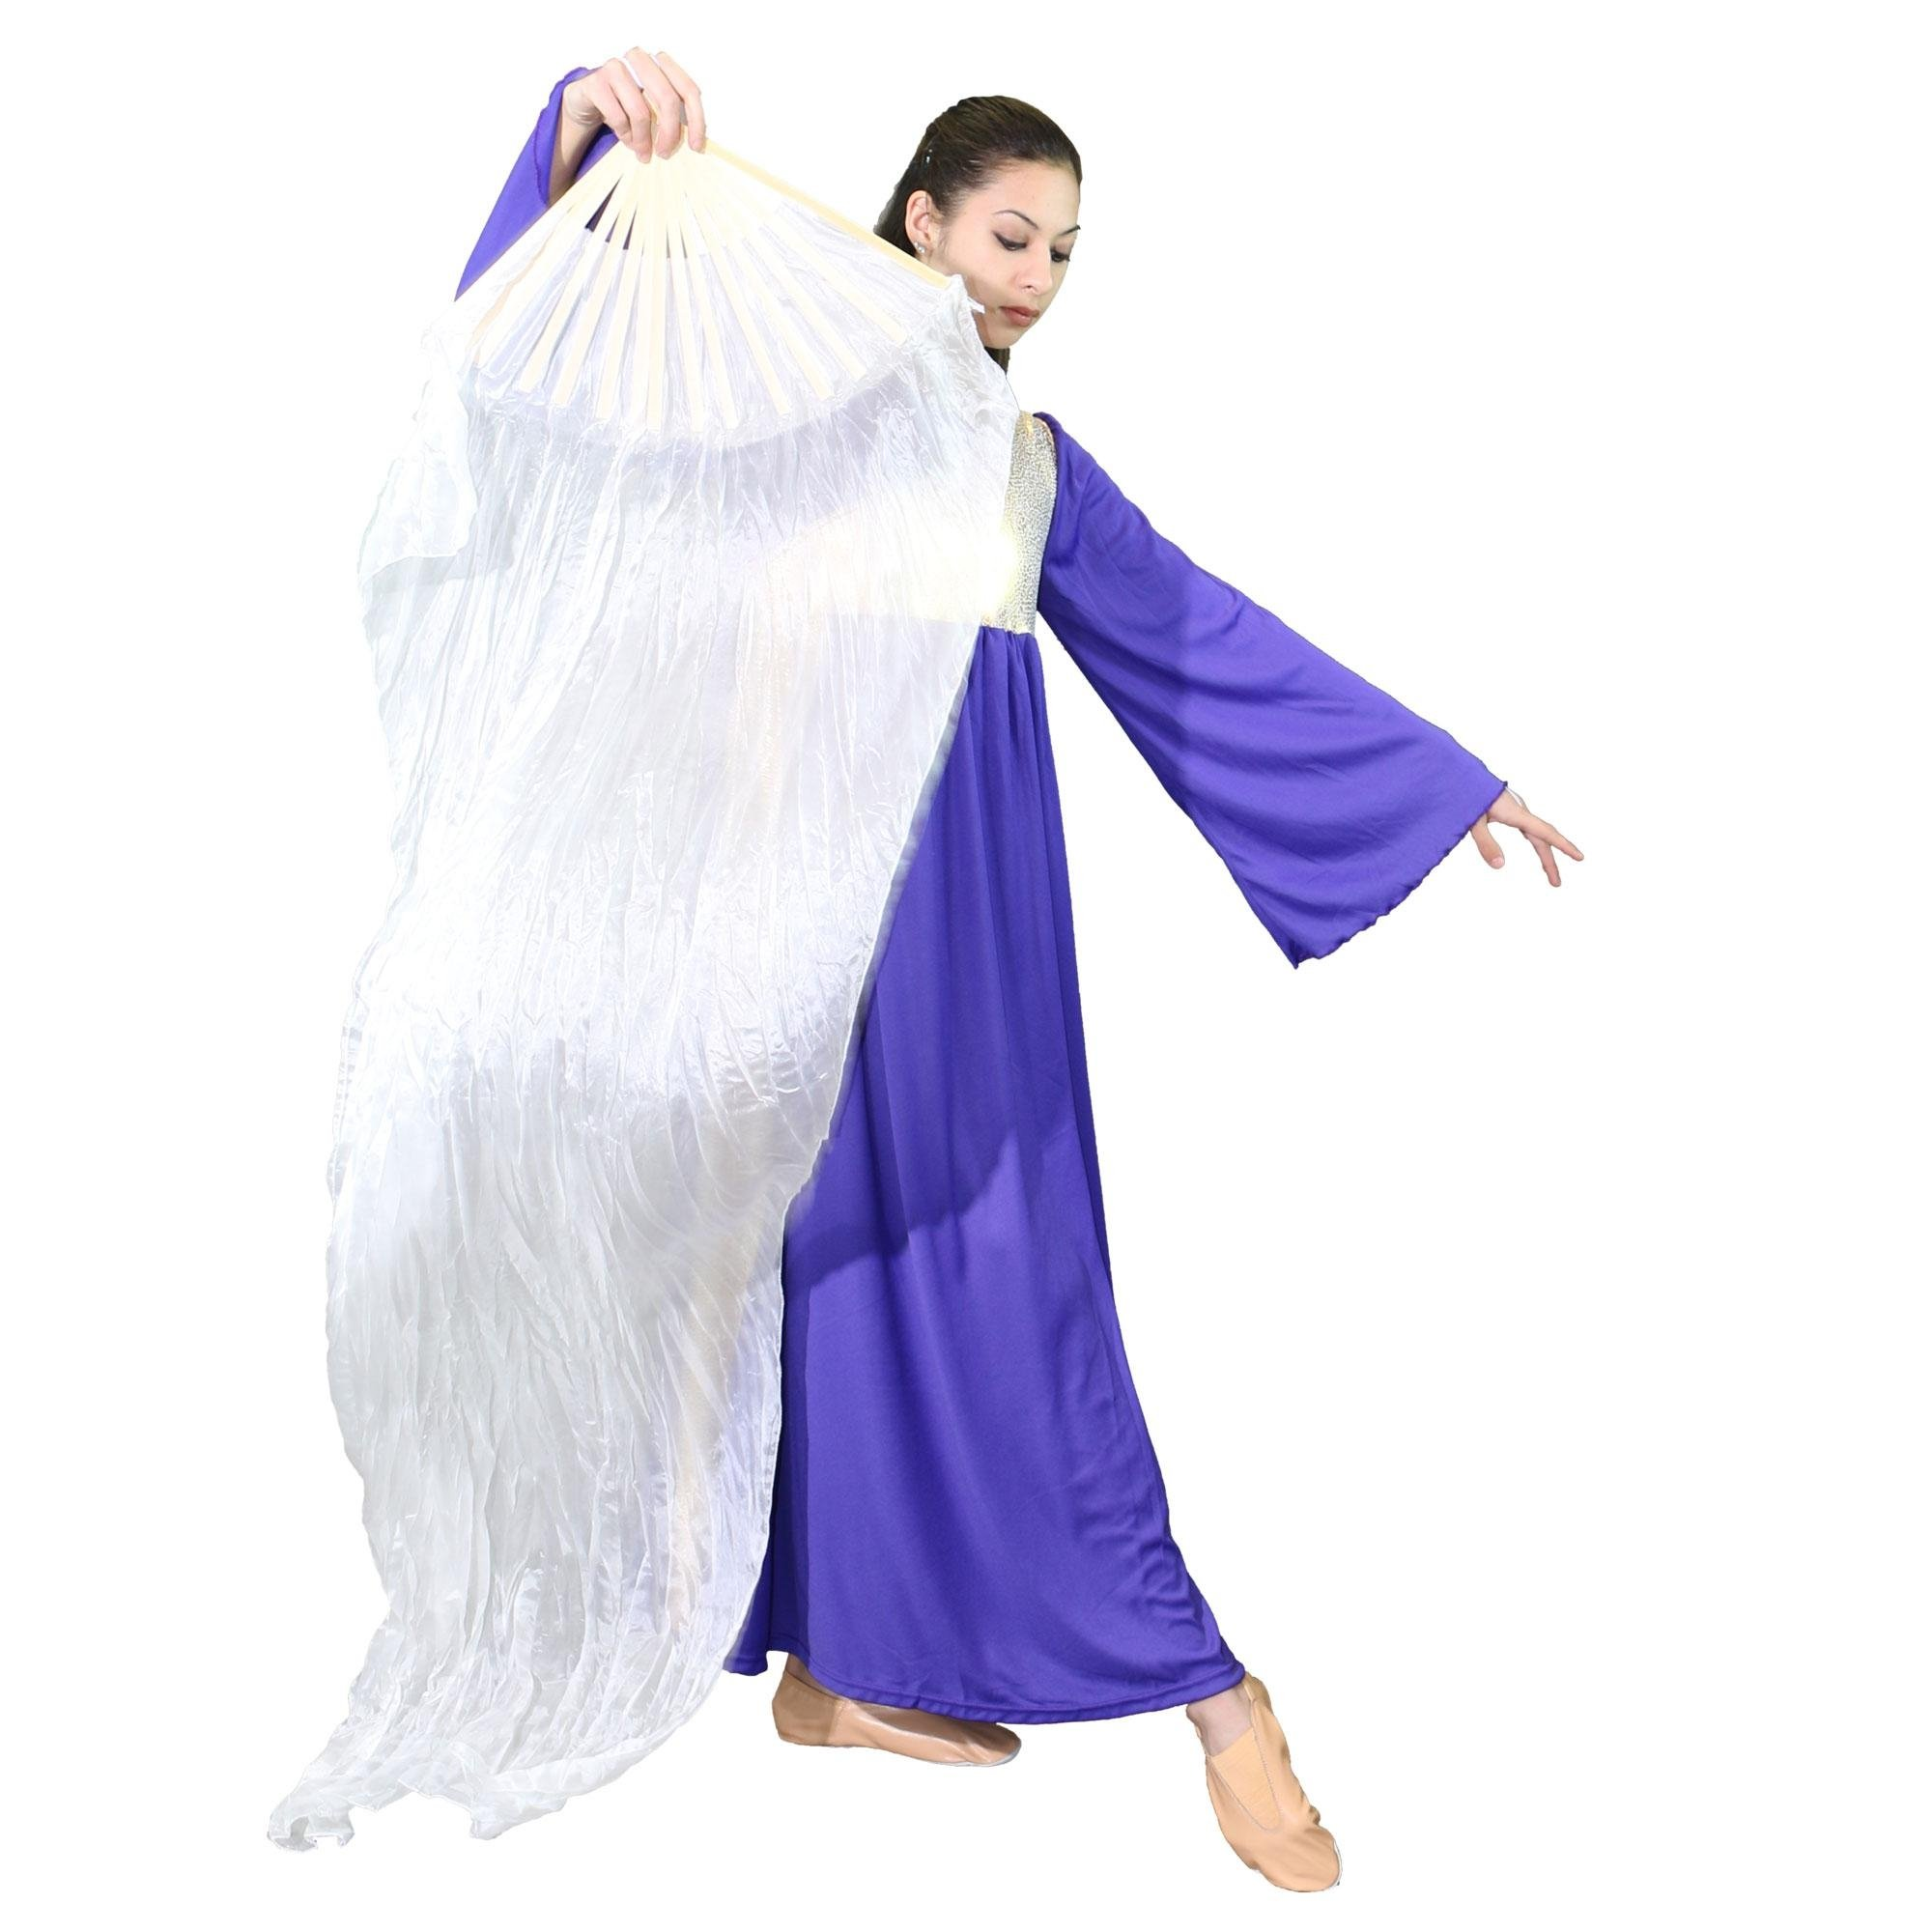 Danzcue Semi-transparent Silk Dance Fan